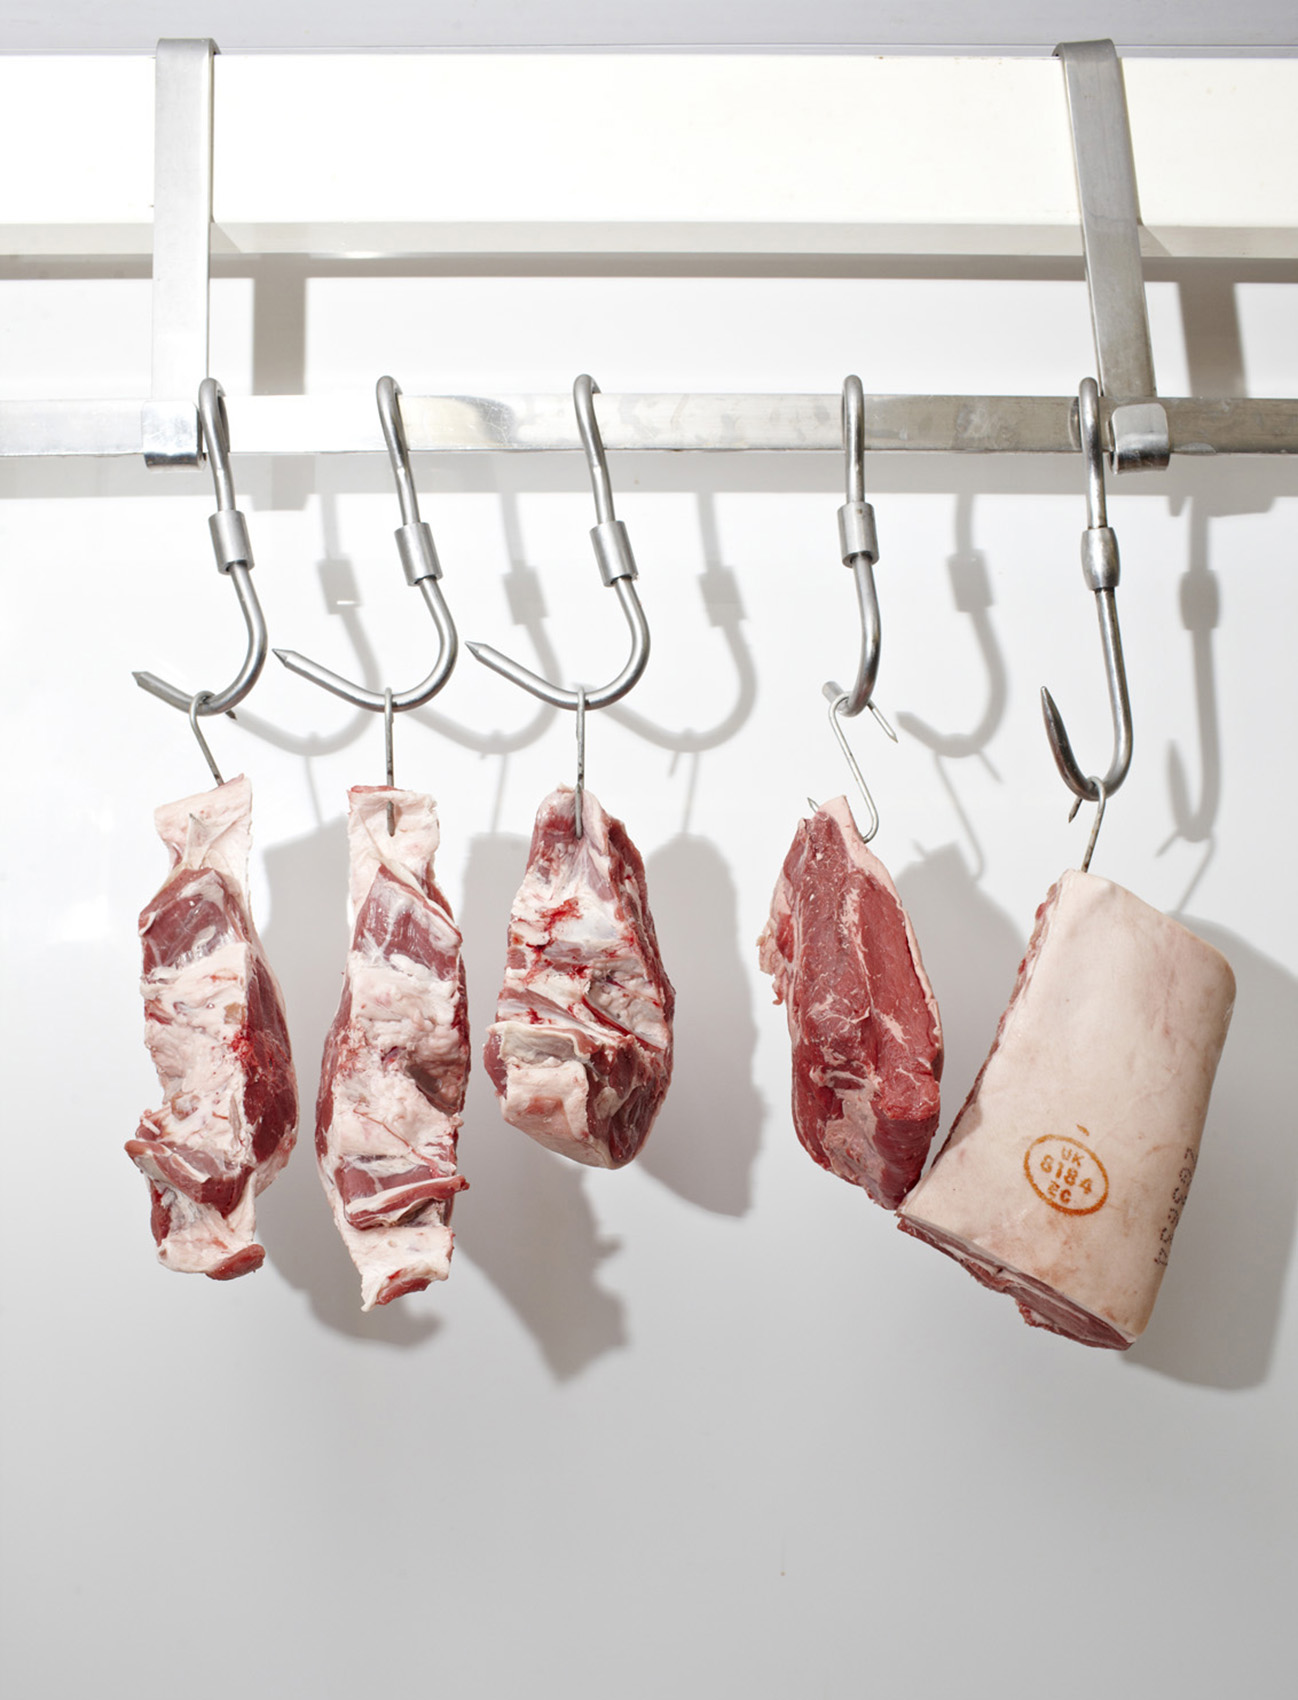 SteveRyan_Photographer_Ingredients_Produce_Meat_Butcher_ColdRoom_05